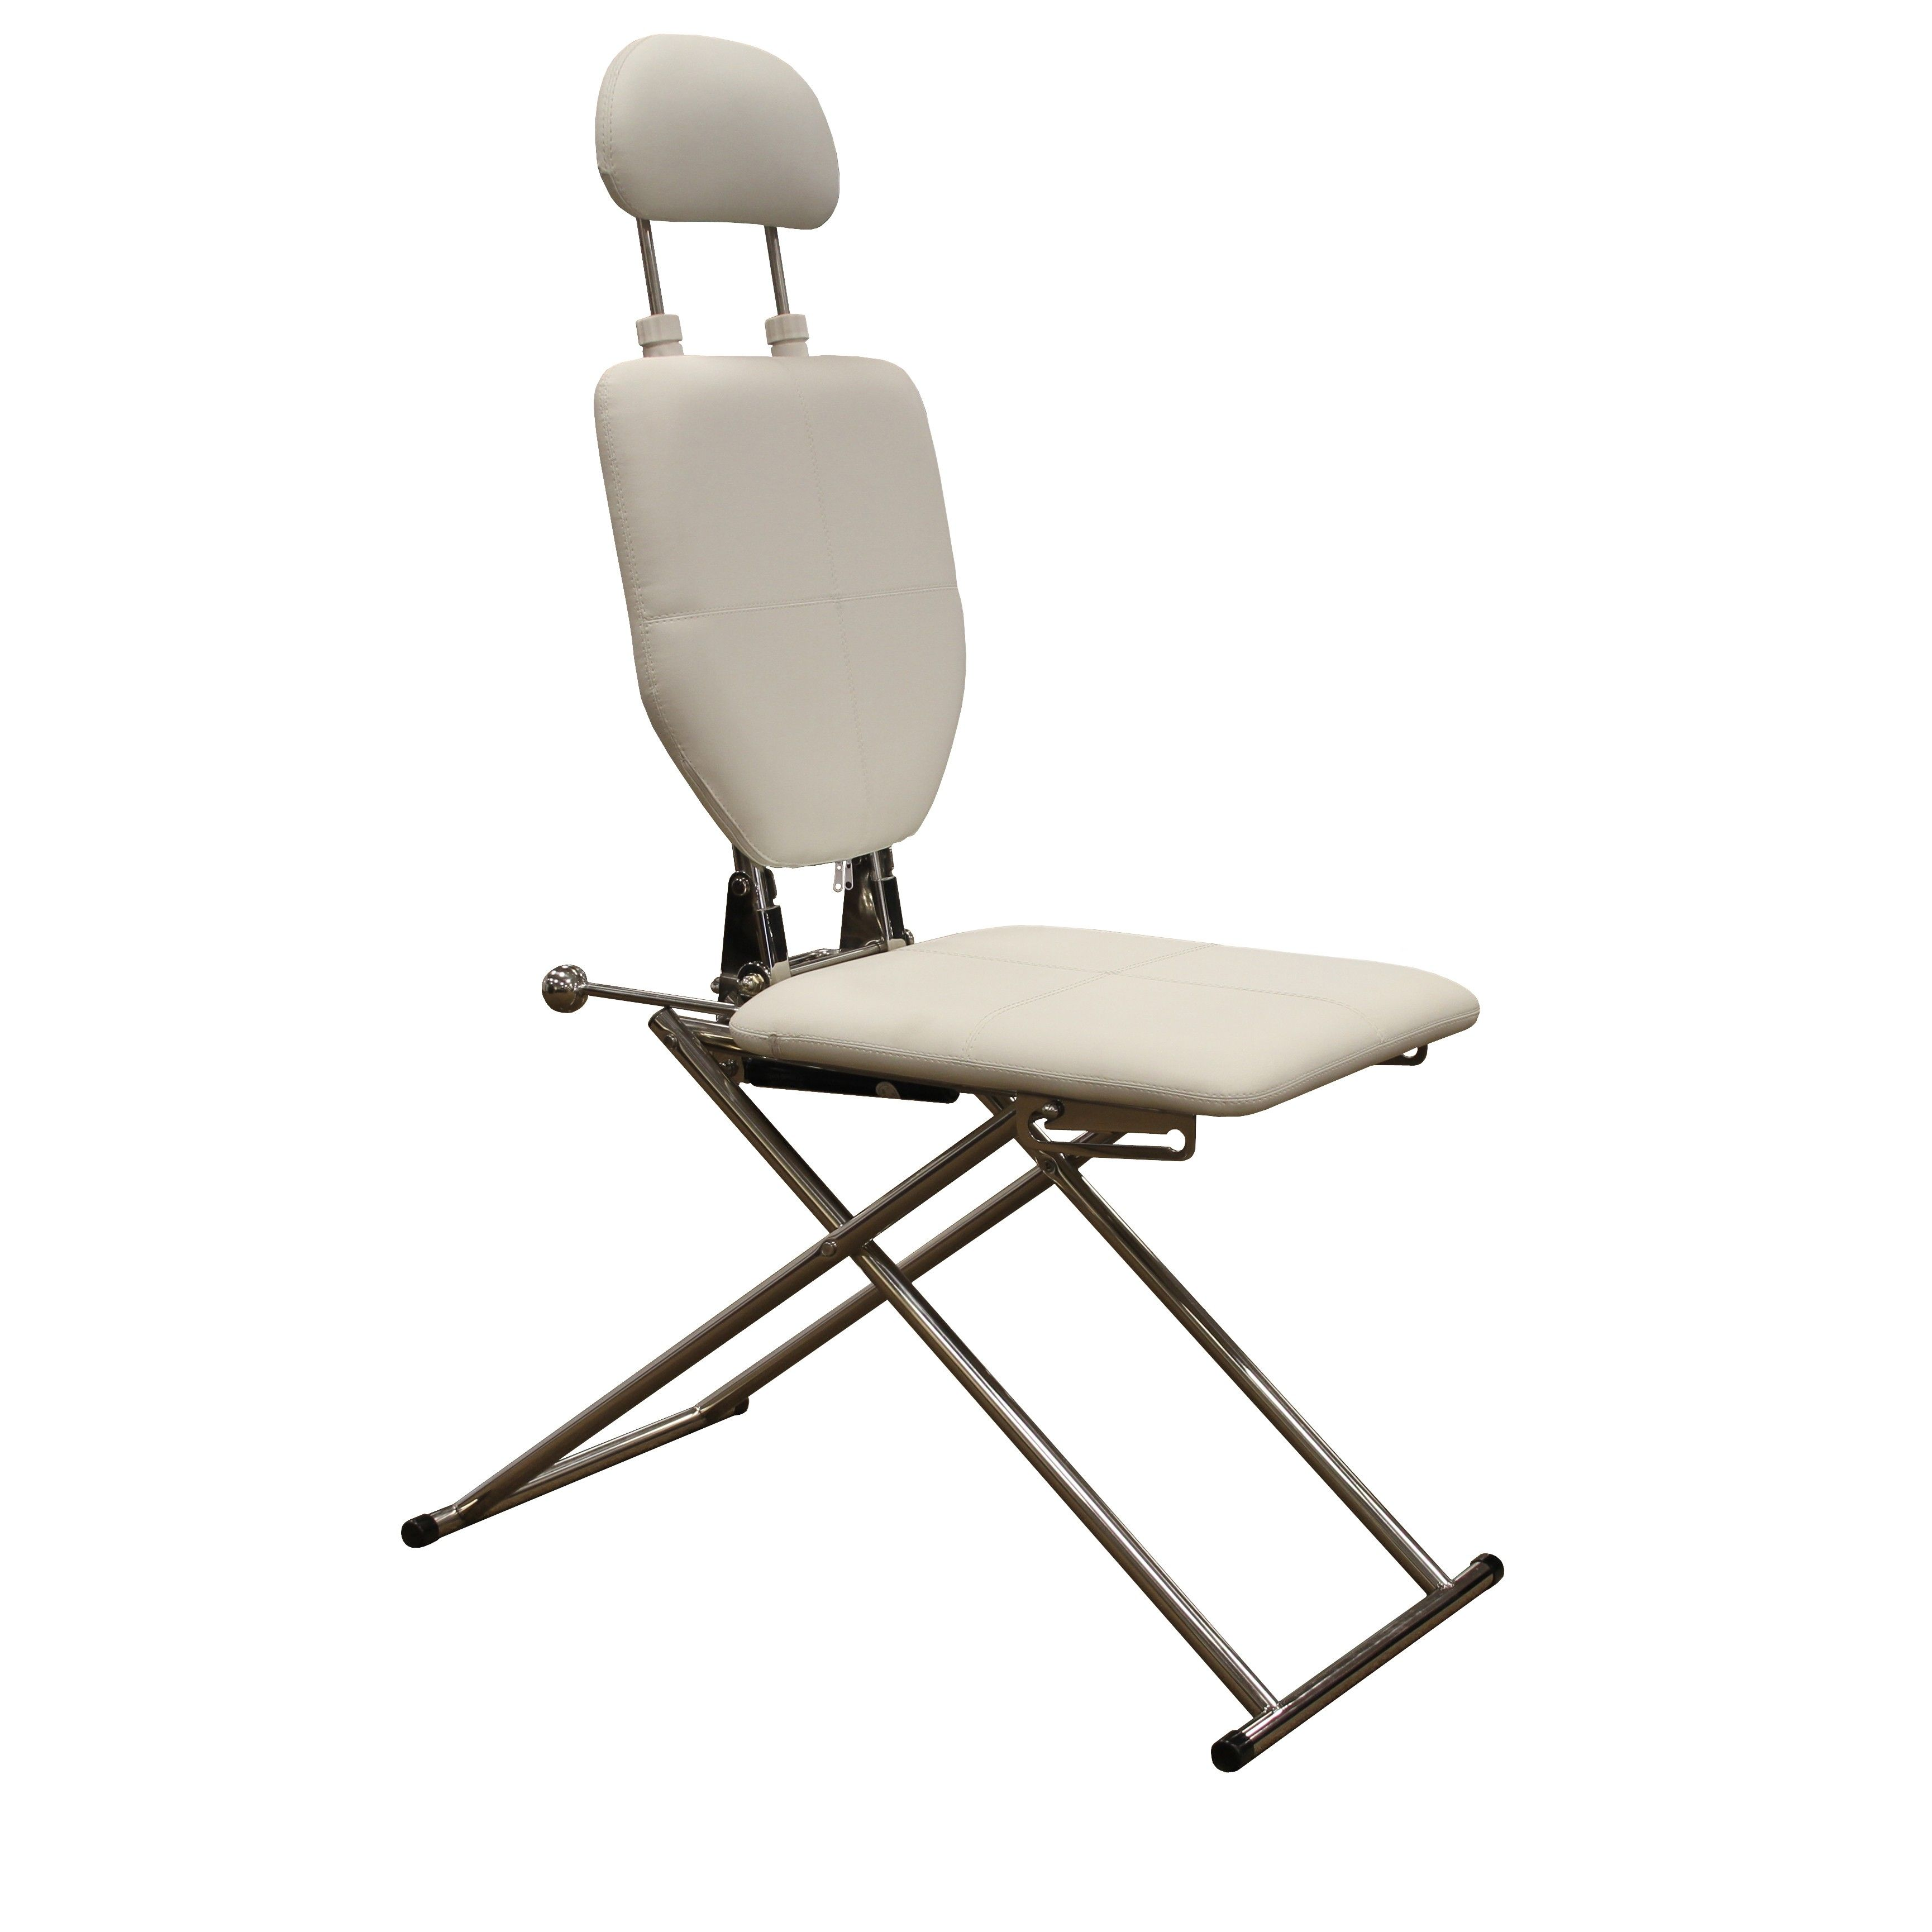 The Mobile Shampoo Facial Chair in White by Minerva Beauty